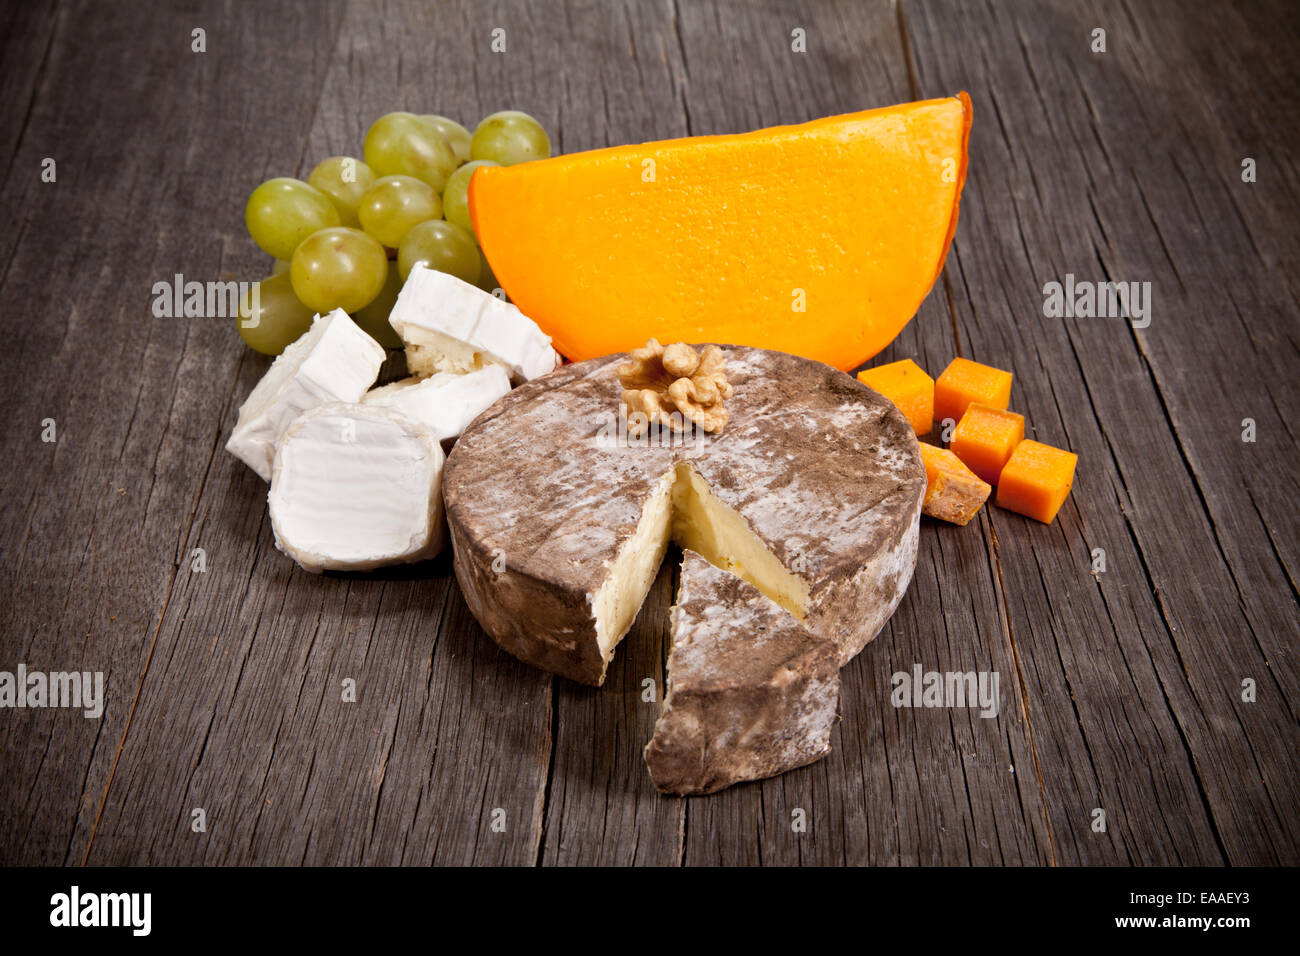 Delicious fresh french cheeses served on wooden table Stock Photo